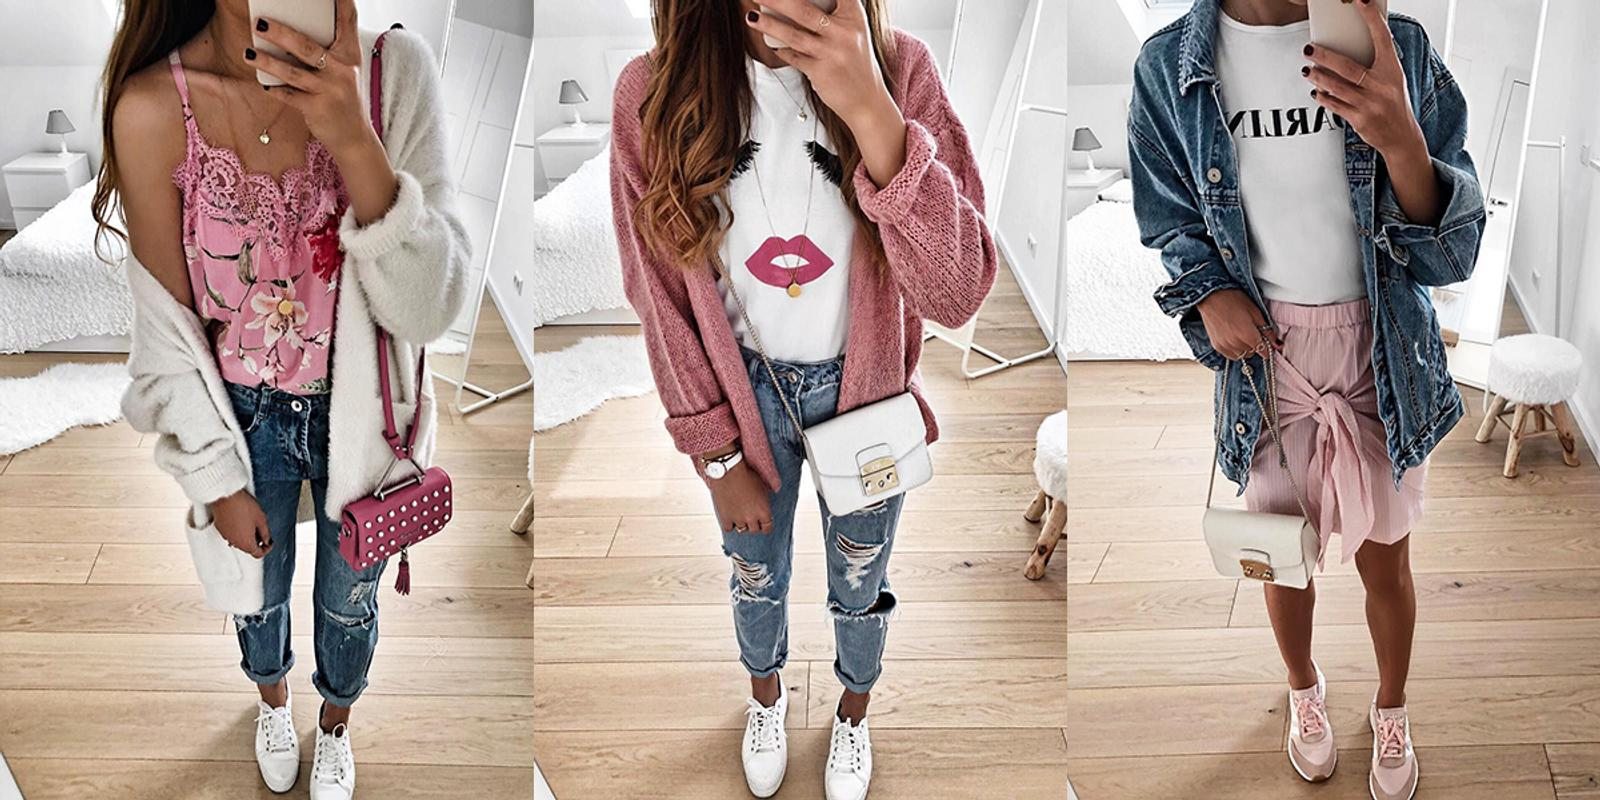 e584403ad8e Teen Outfit Ideas Summer Fashion Trends for Android - APK Download